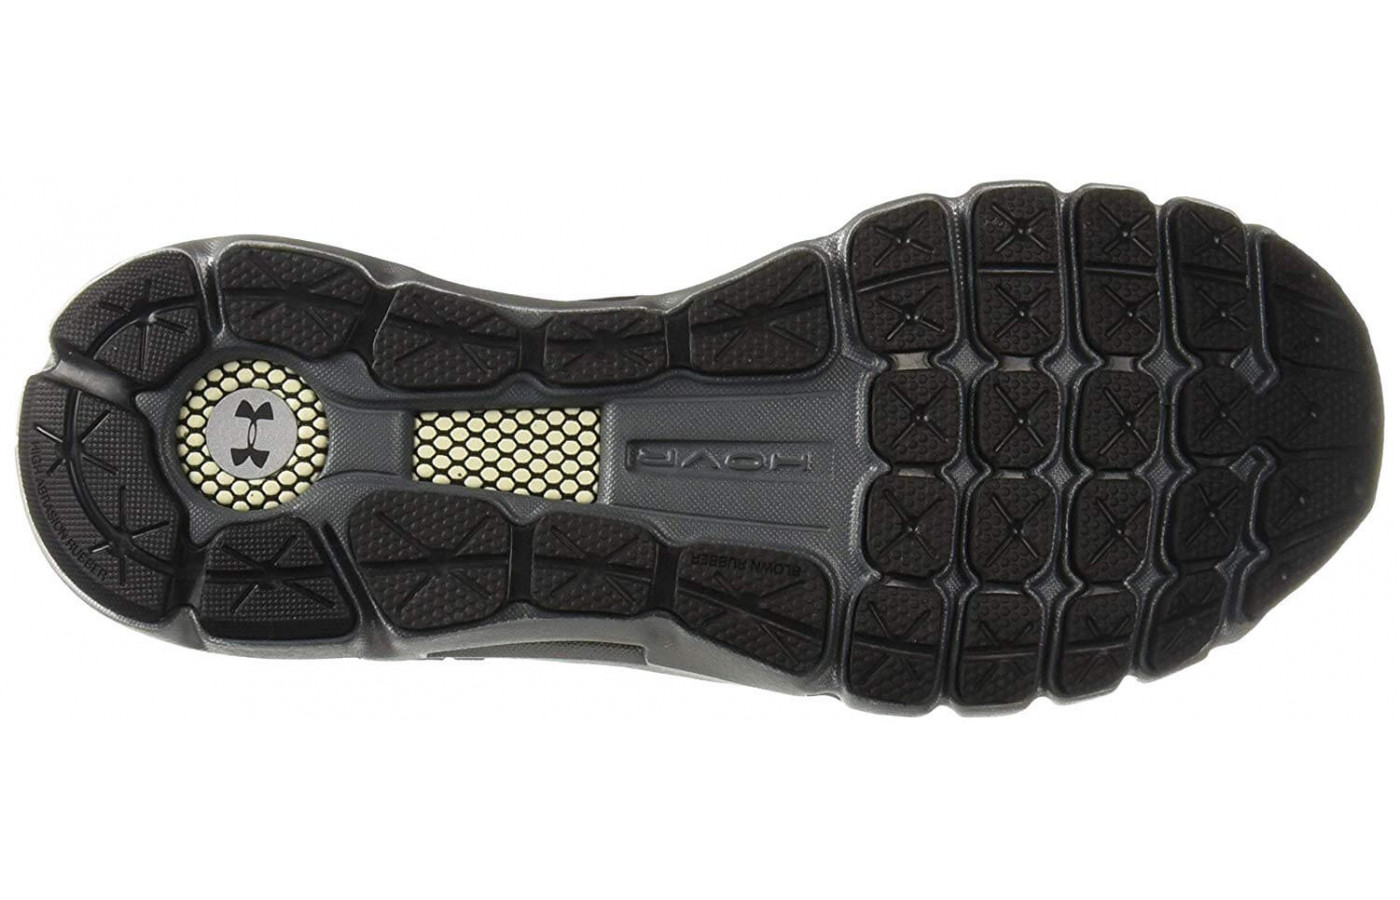 Under Armour Men's HOVR Infinite sole